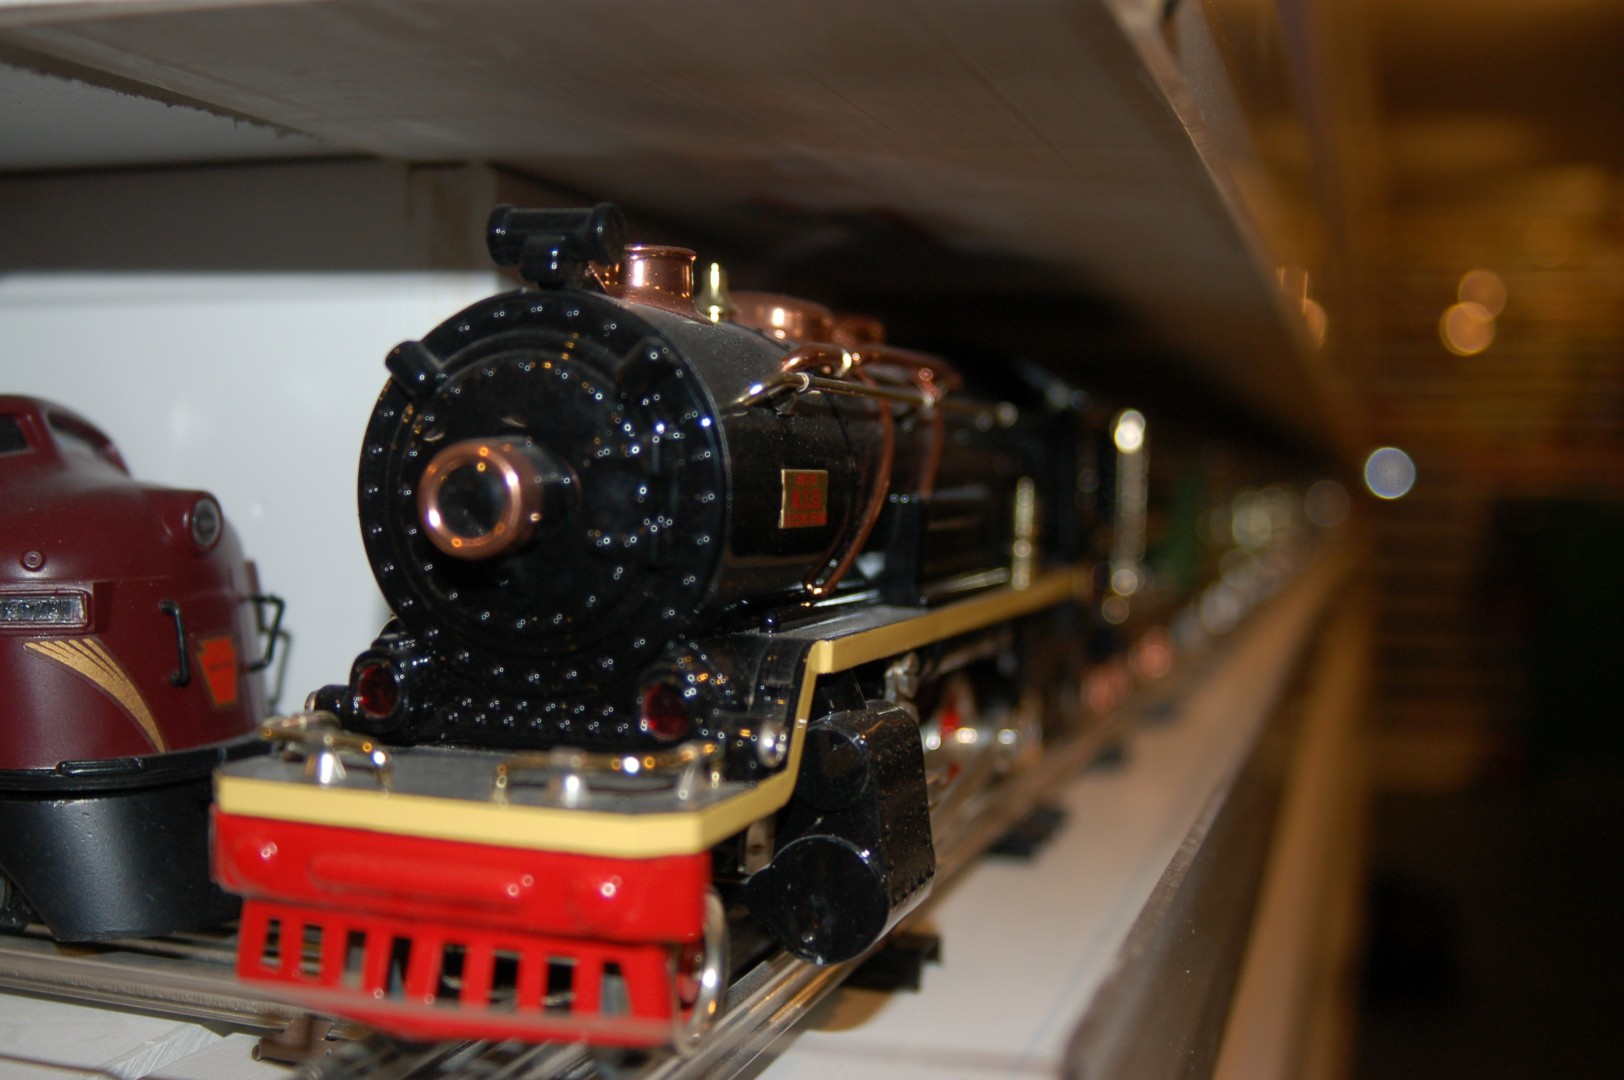 Model Train Home Tour opens doors to whimsical, creative